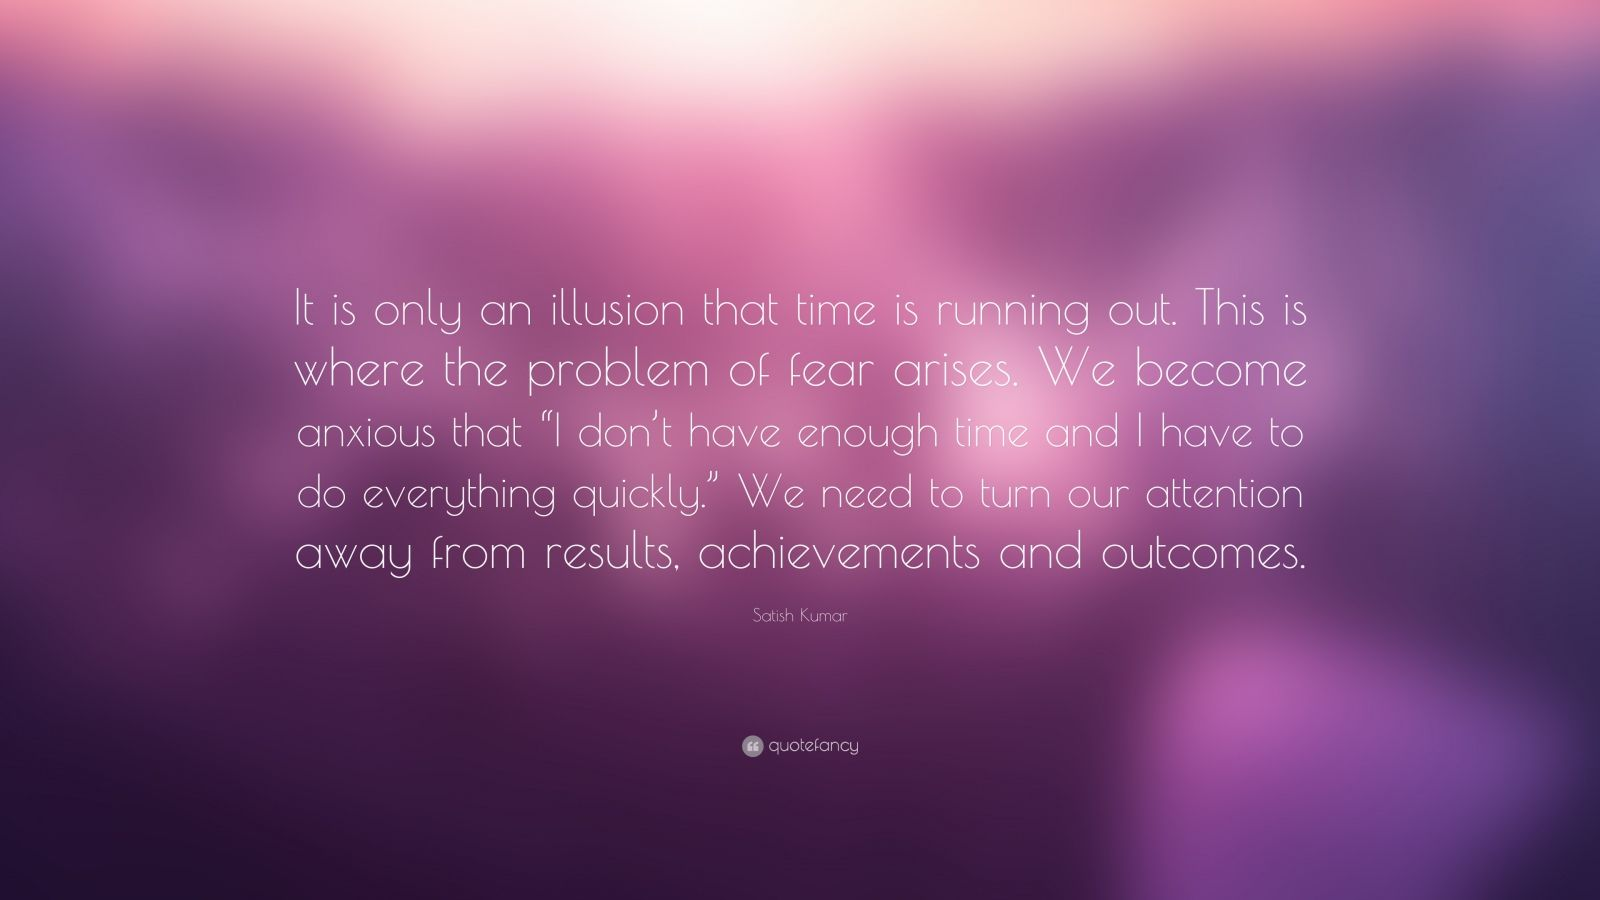 """Satish Kumar Quote: """"It is only an illusion that time is running out. This is where the problem of fear arises. We become anxious that """"I don't have enough time and I have to do everything quickly."""" We need to turn our attention away from results, achievements and outcomes."""""""